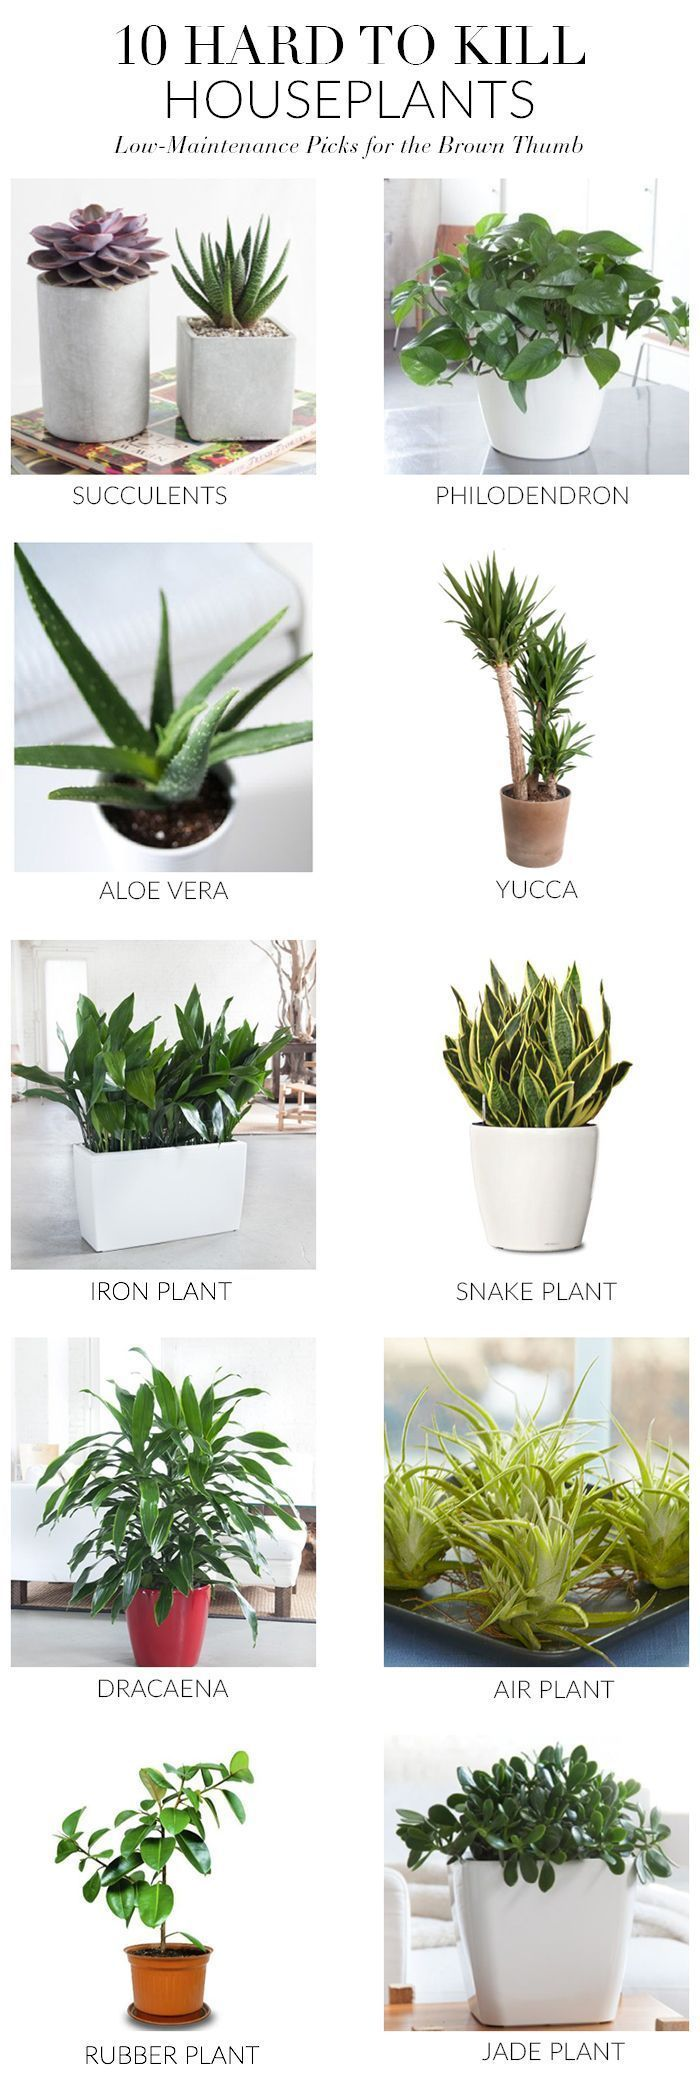 Photo of 9 Great Indoor Plant Ideas